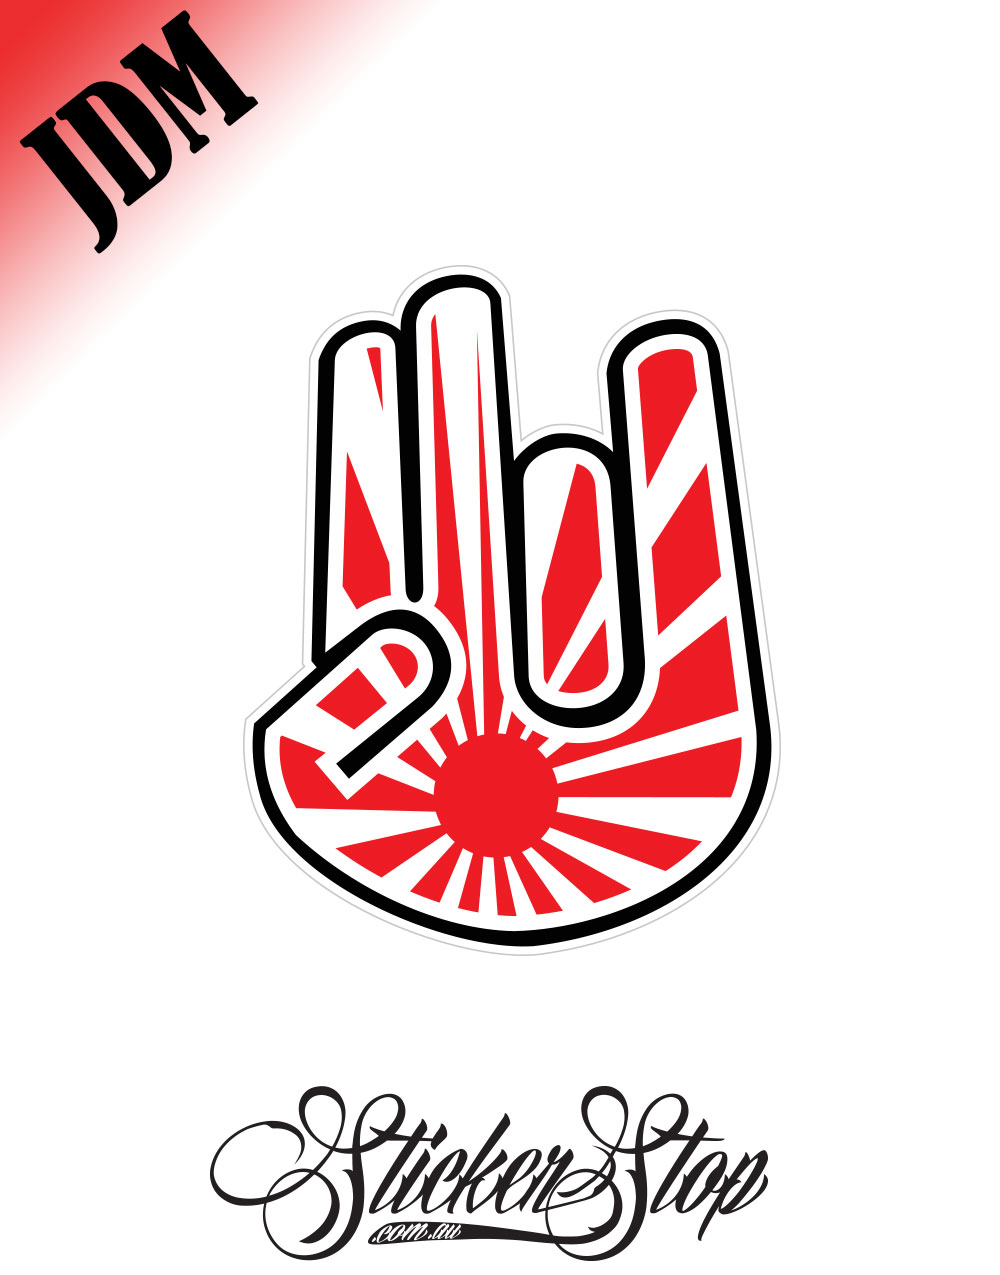 Rising Sun Shocker JDM Sticker Decal